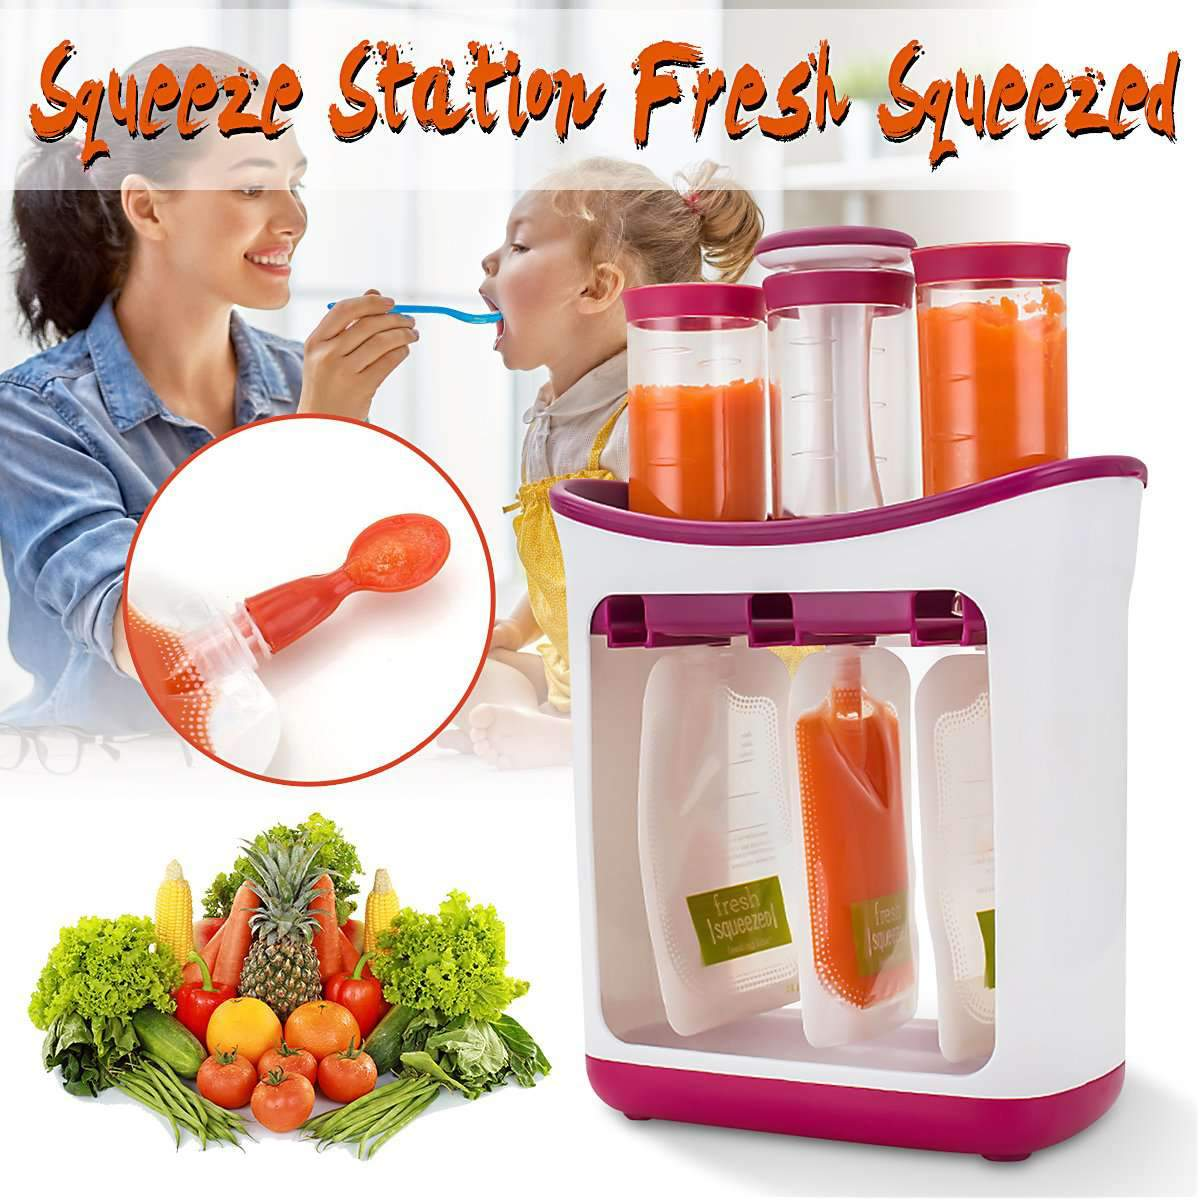 Food-grade PP Infant Baby Feeding Food Squeeze Station Toddler Fruit Maker Dispenser Homemade 10 Pouches 3 Food Dispensors